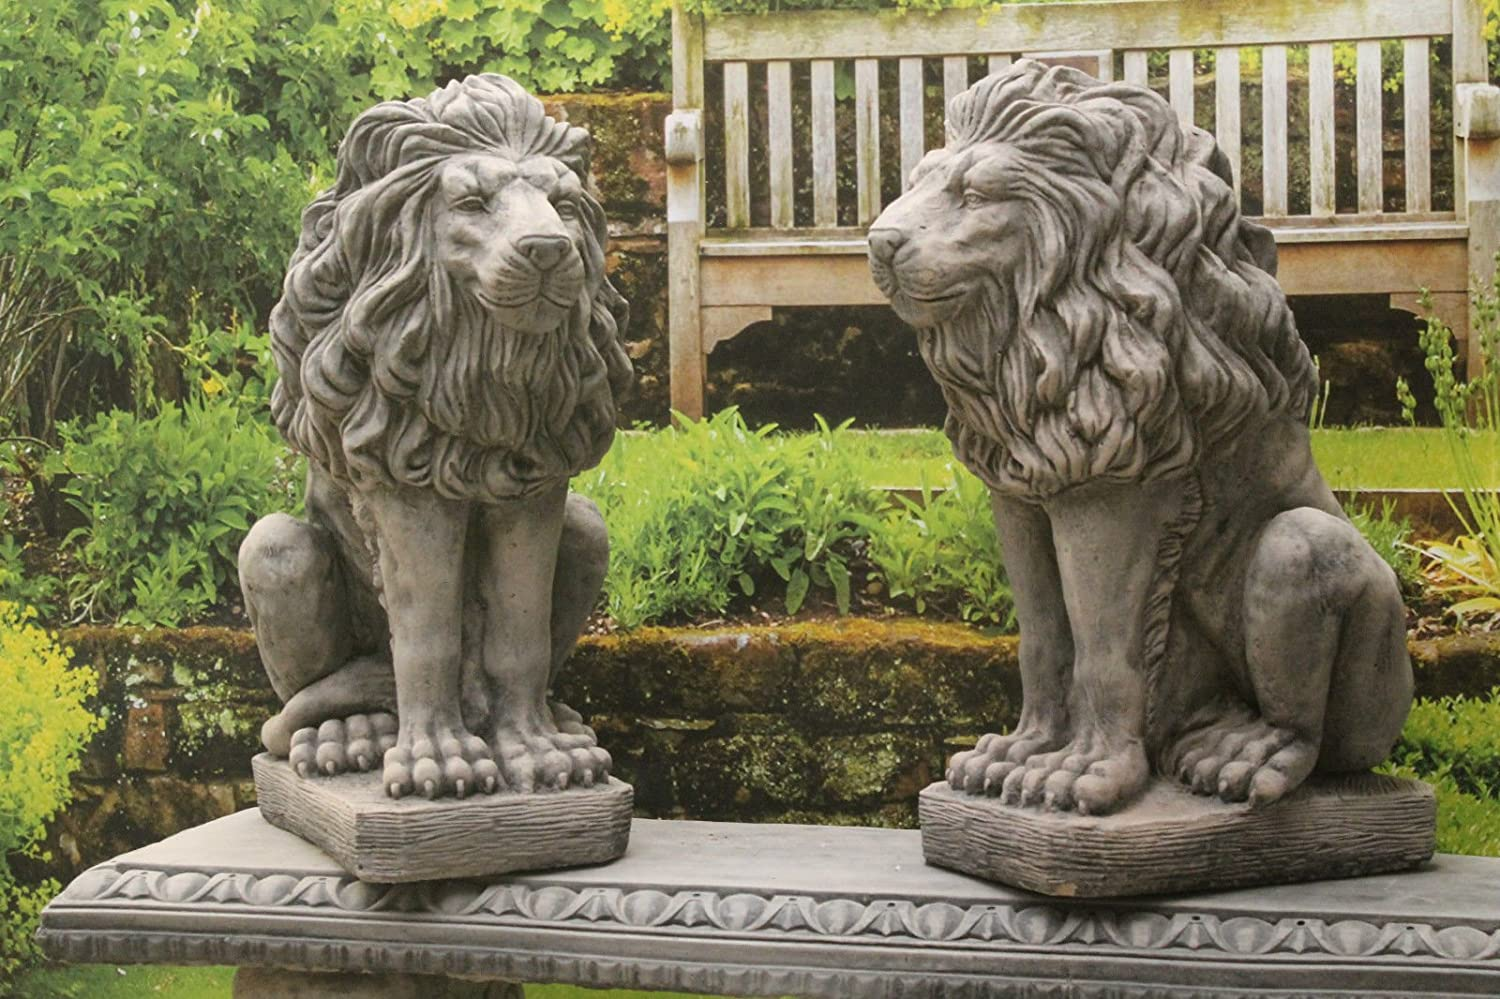 Ornate stone pair of sitting lions garden ornaments bronze finish ...